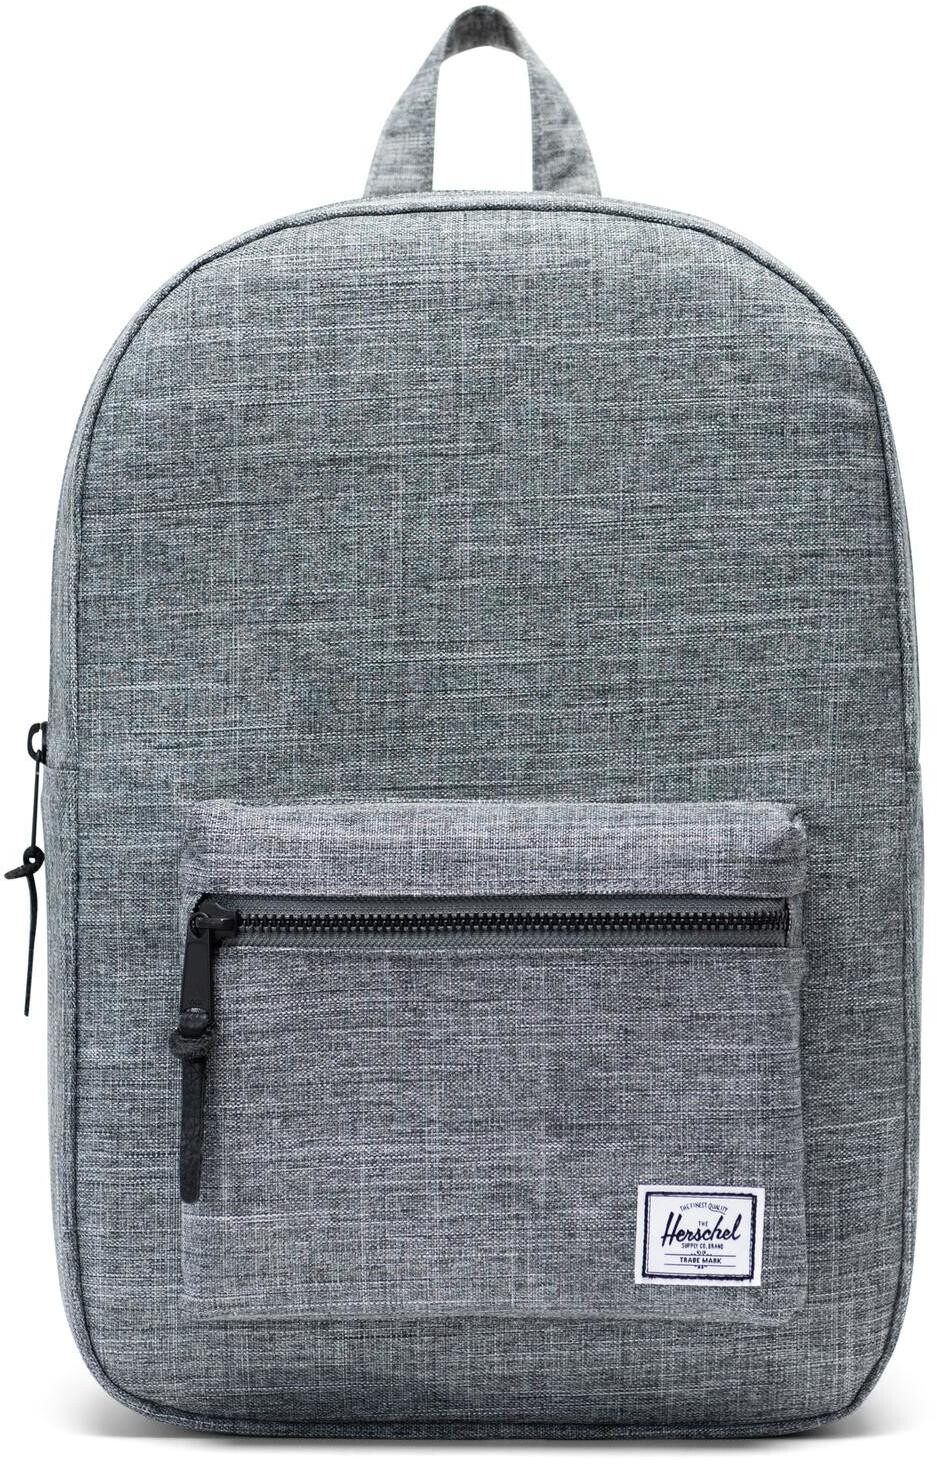 Herschel Settlement Mid-Volume Rygsæk 17L, raven crosshatch (2019) | Travel bags